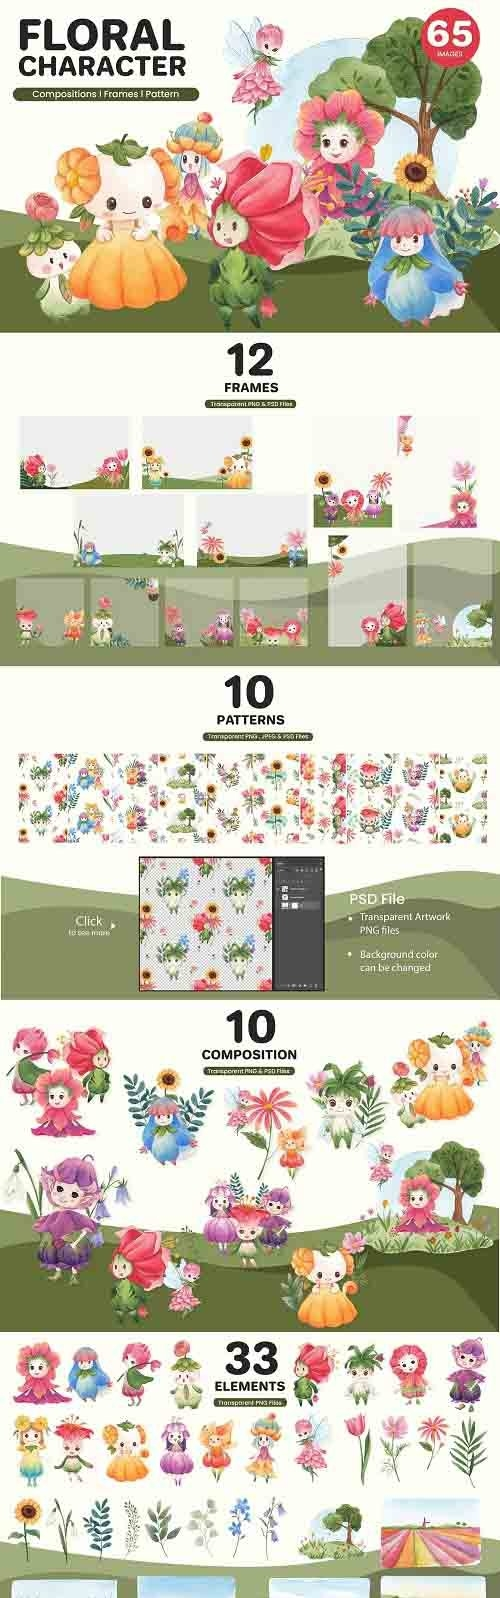 Floral Fairly tail Character - 6021463